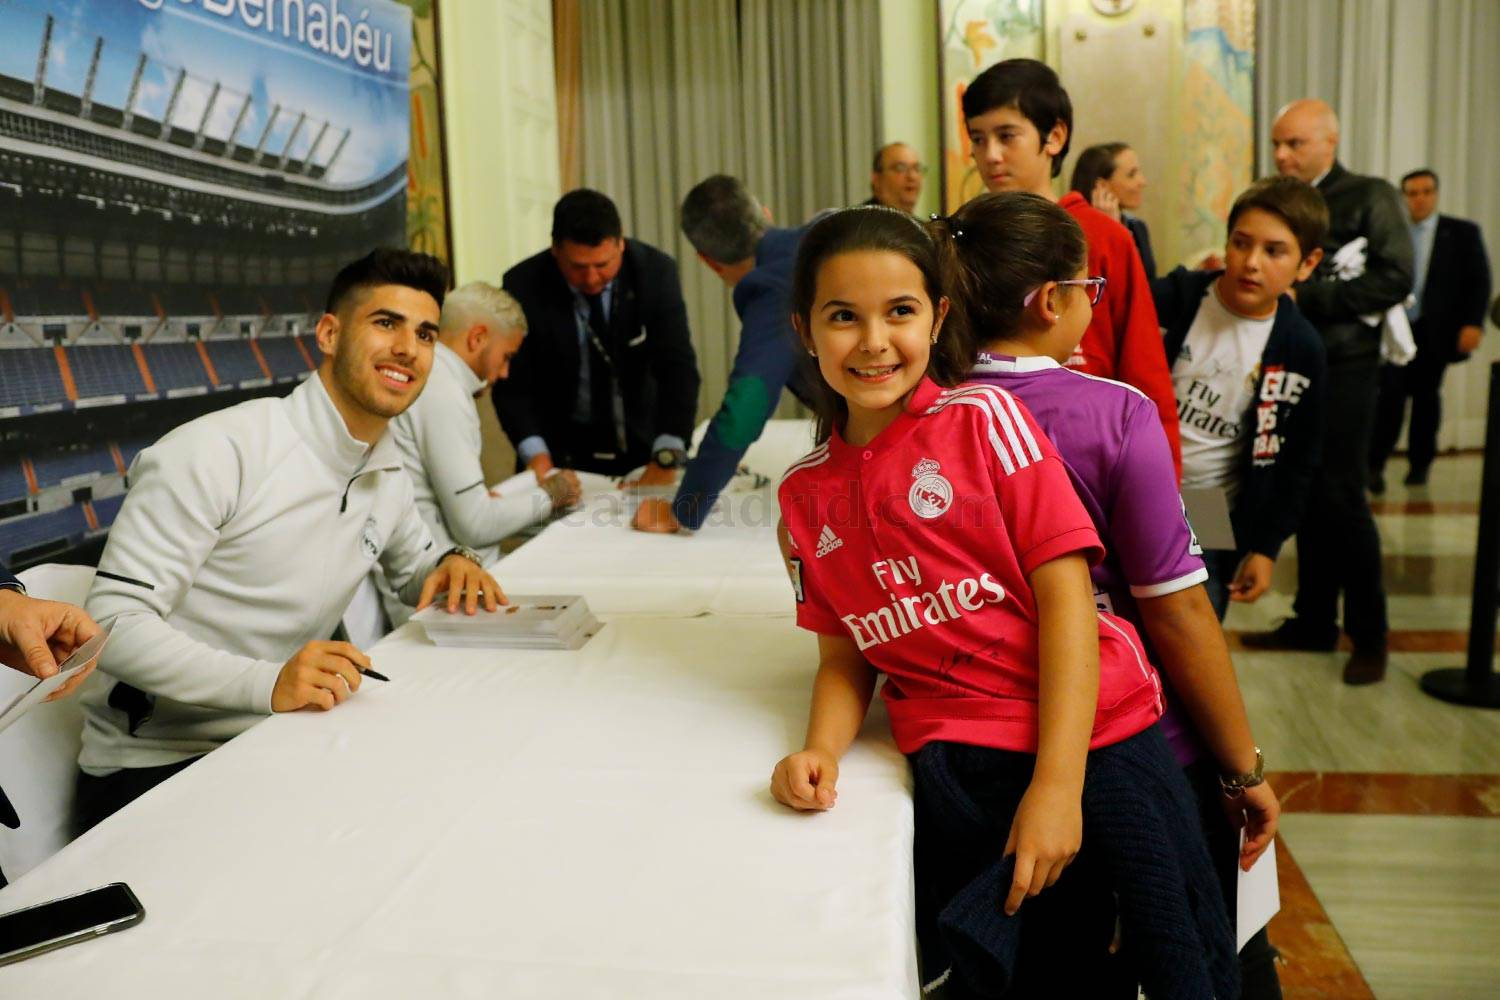 Real Madrid - Firmas del Real Madrid en Las Palmas - 30-03-2018